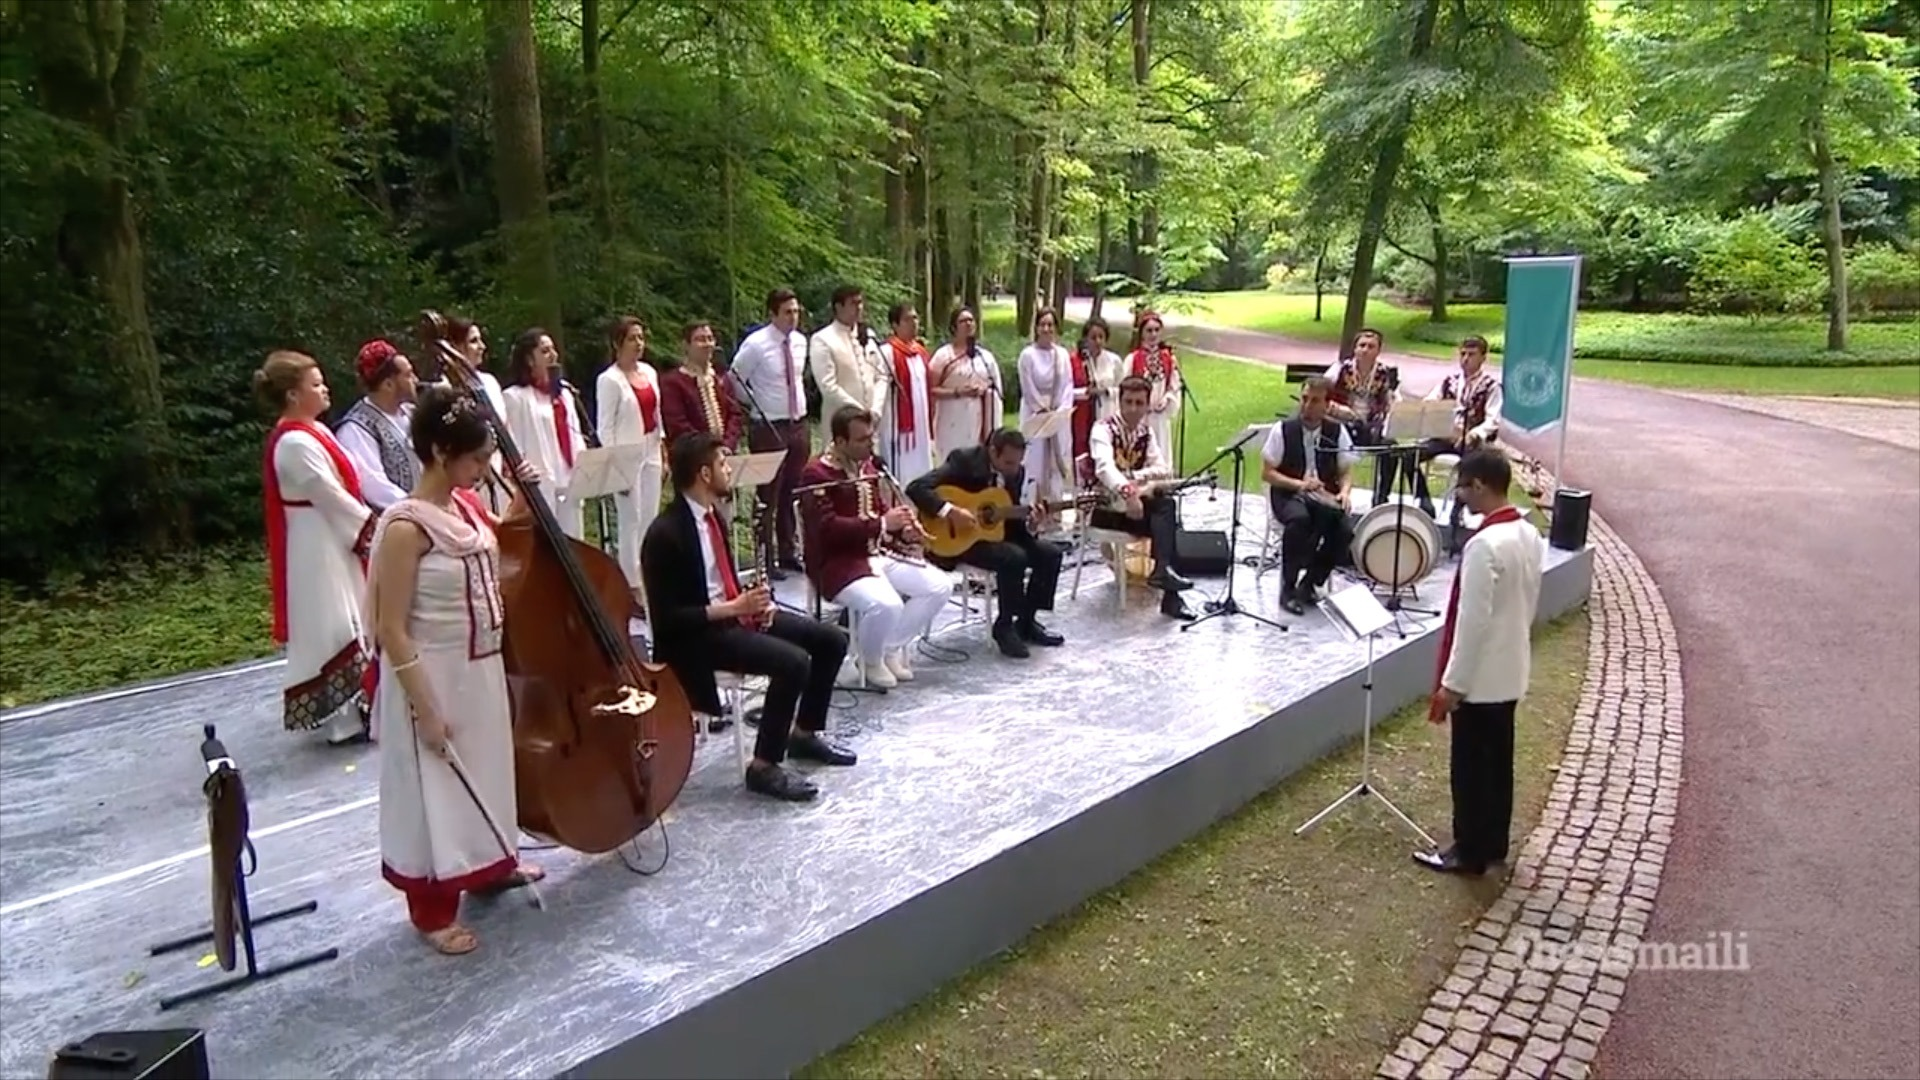 Performing with the Musical Ensemble at the Homage Ceremony